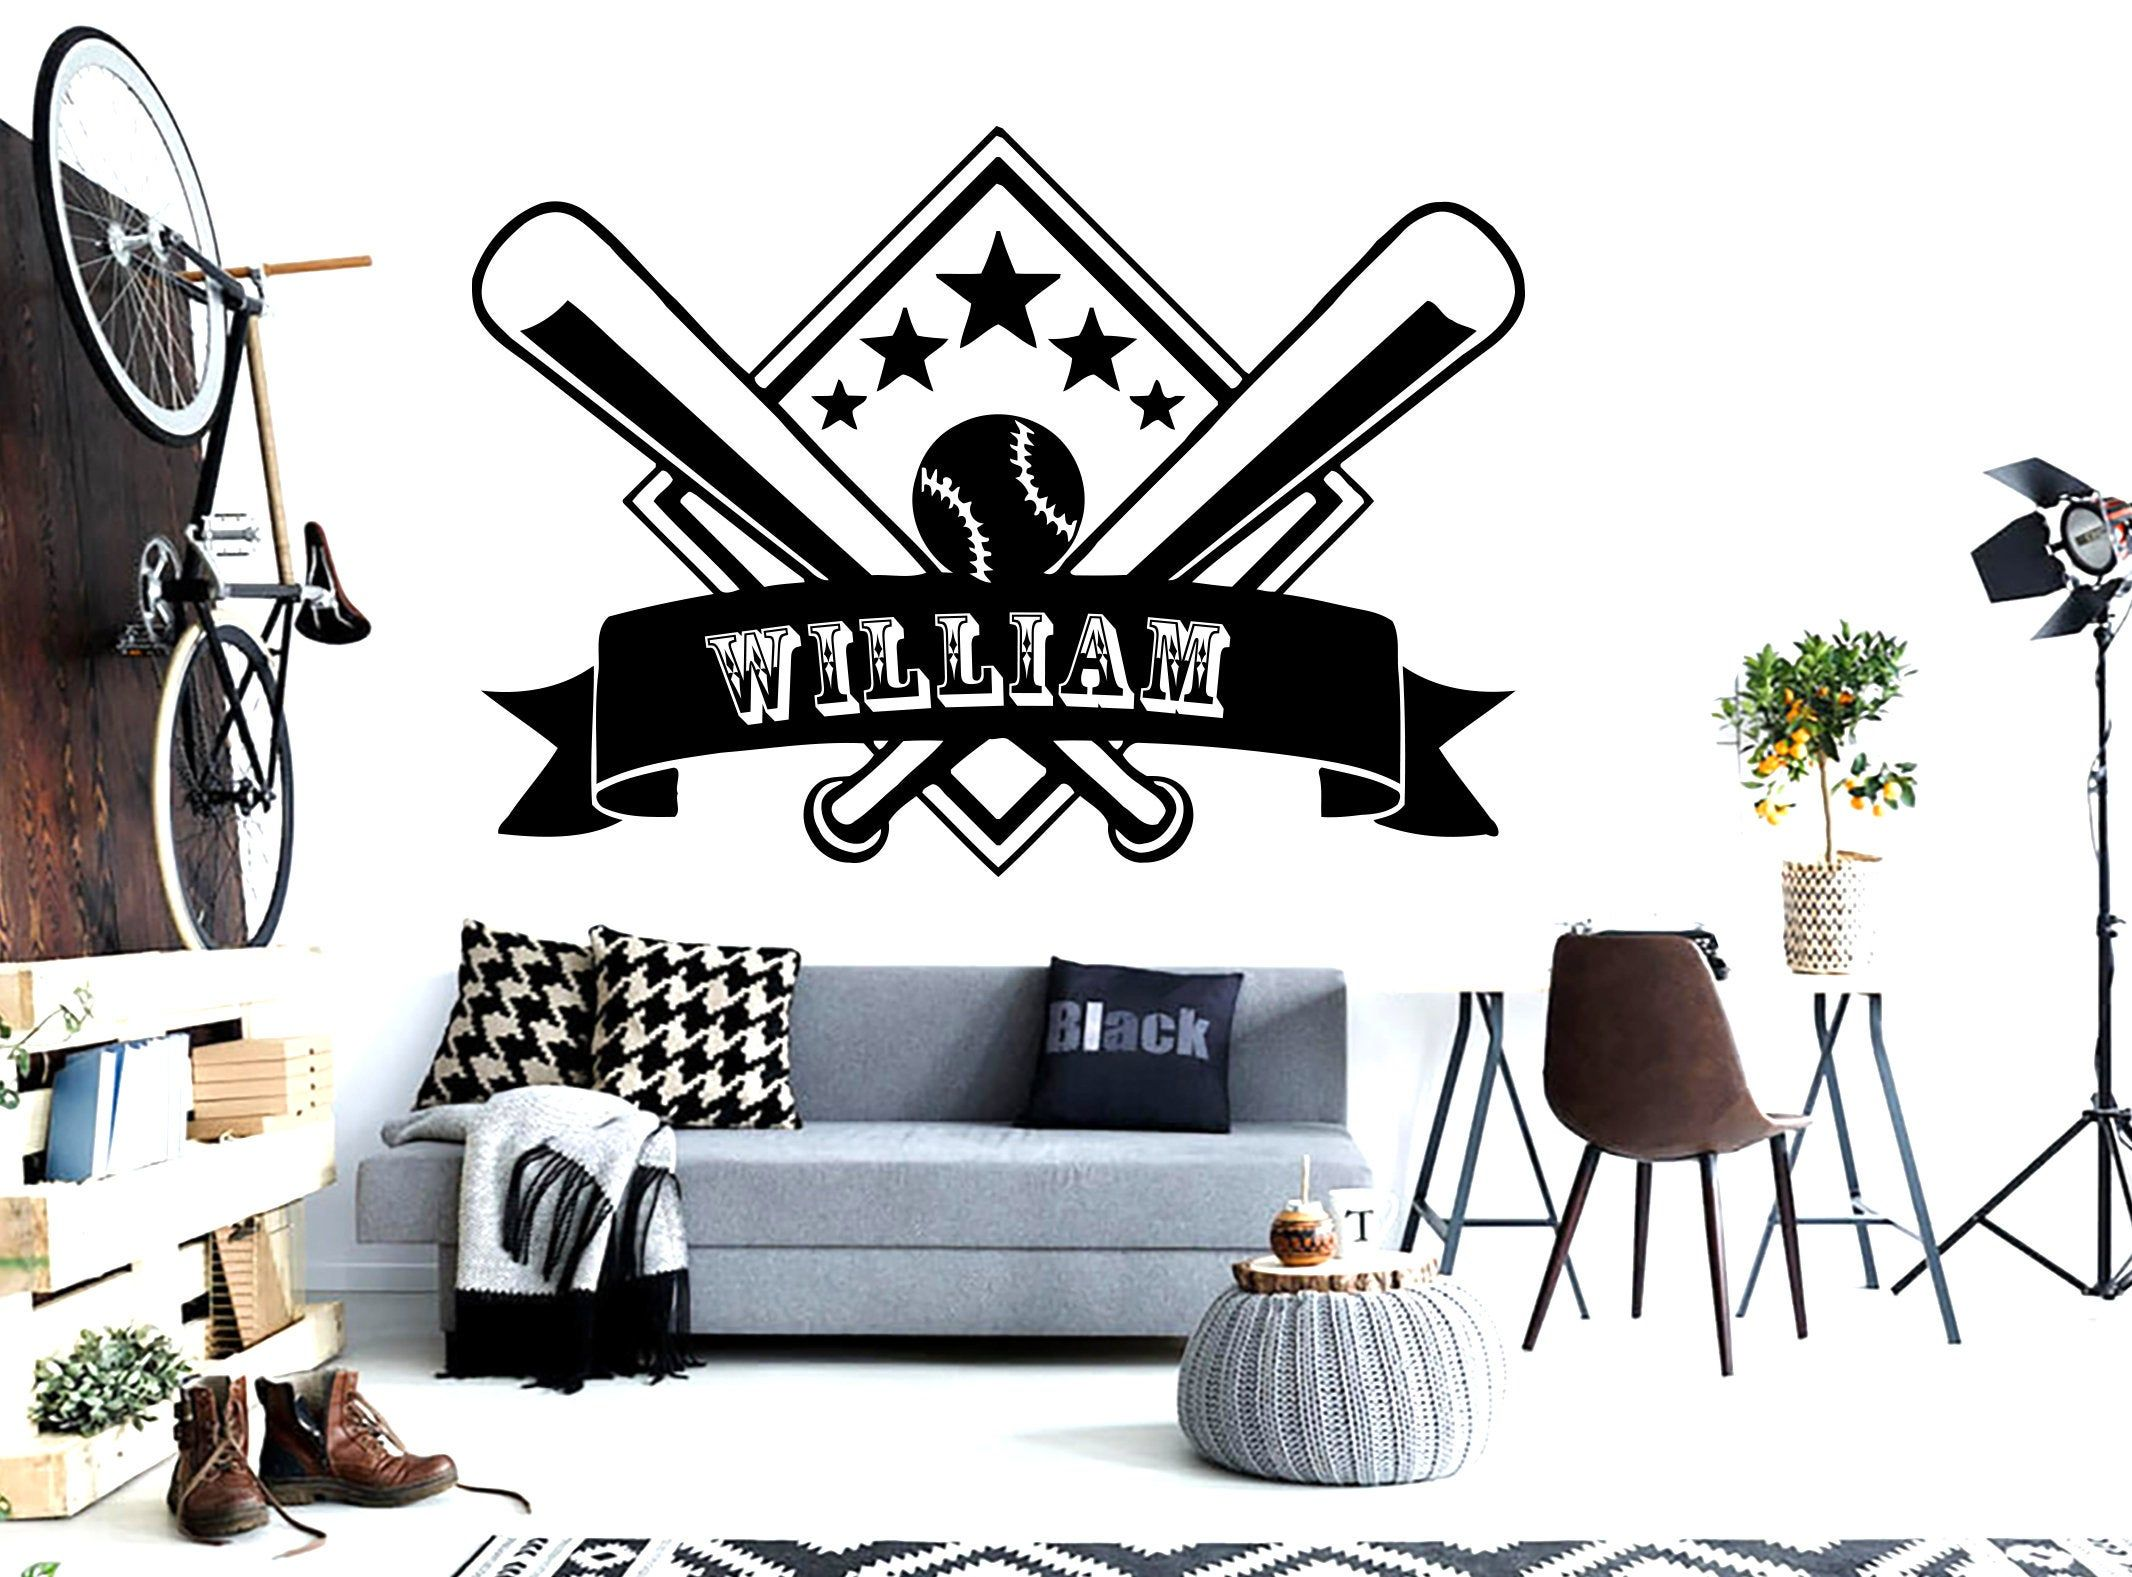 Baseball Wall Art Quote Personalized Gifts Custom Decal Wall Decal Sport Vinyl Boy Wall Art Jersey Wall Stickers Kids Room Home Decor 791er In 2020 With Images Sports Wall Decals Baseball